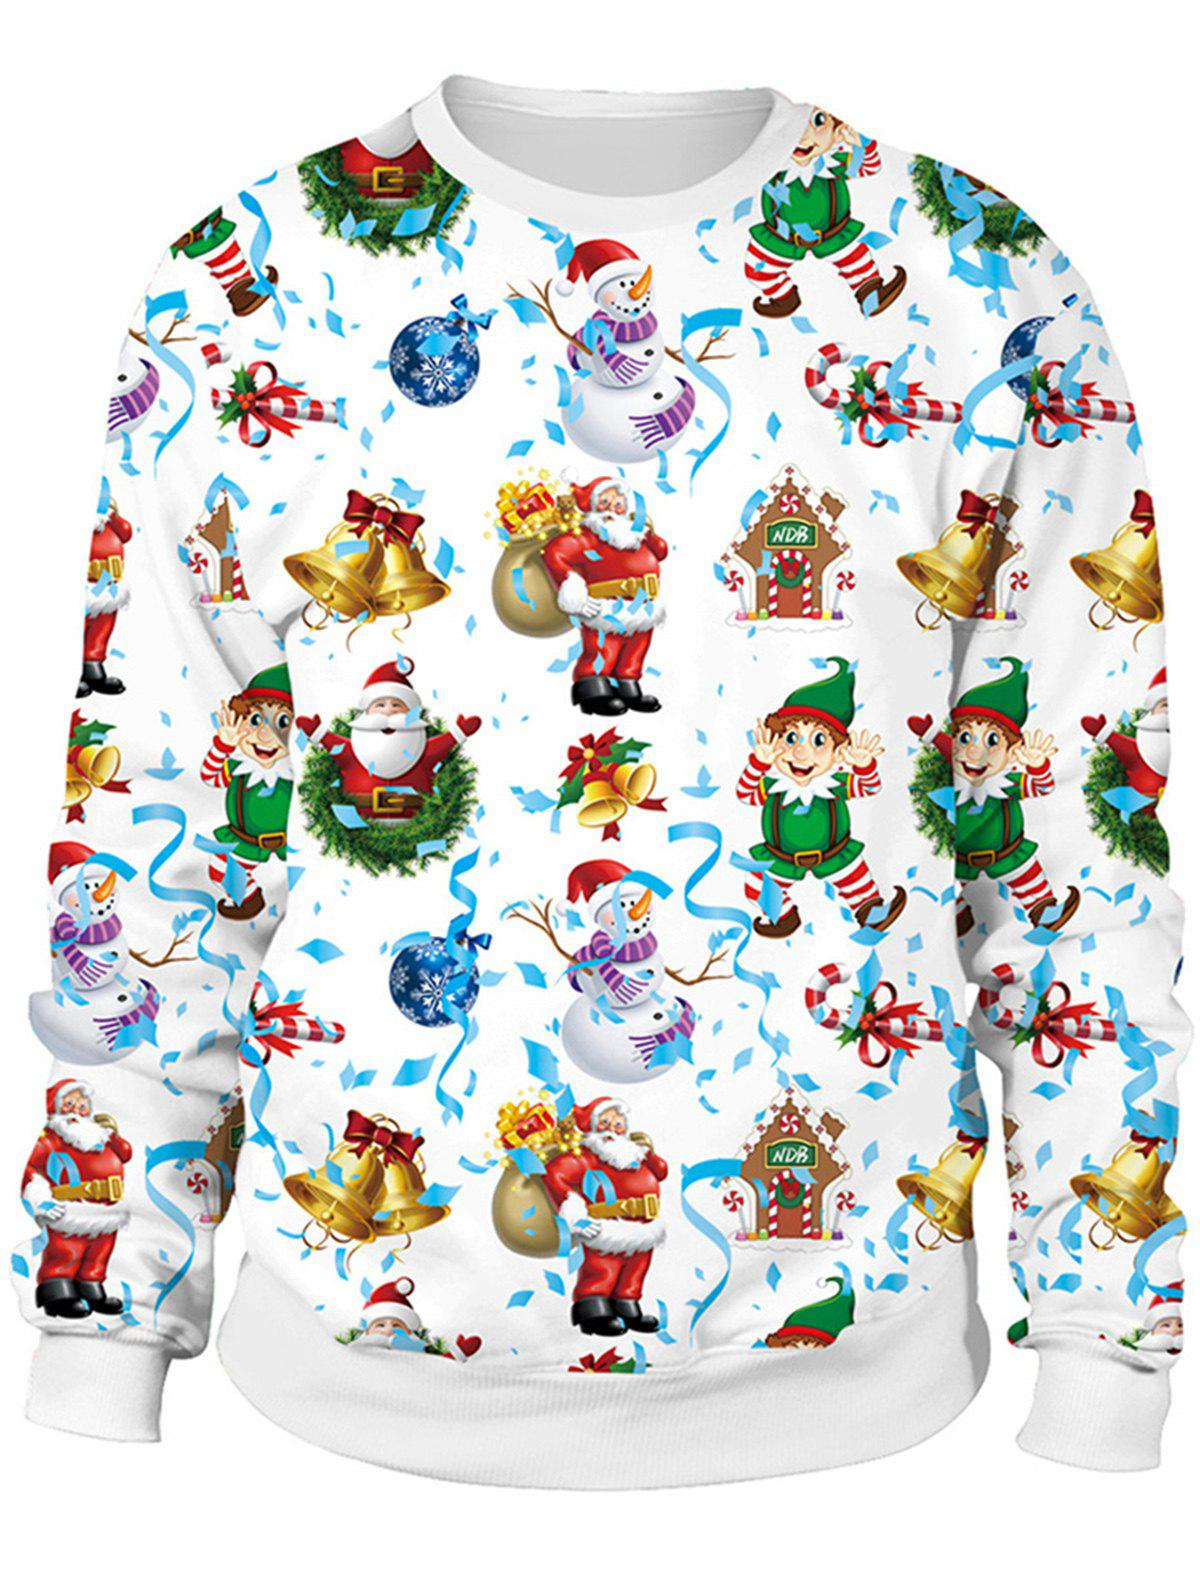 Fancy Christmas Sweater x Naughty or Nice 3D Sublimation print Crewneck  Sweatshirts For Women Men d6294df9f3